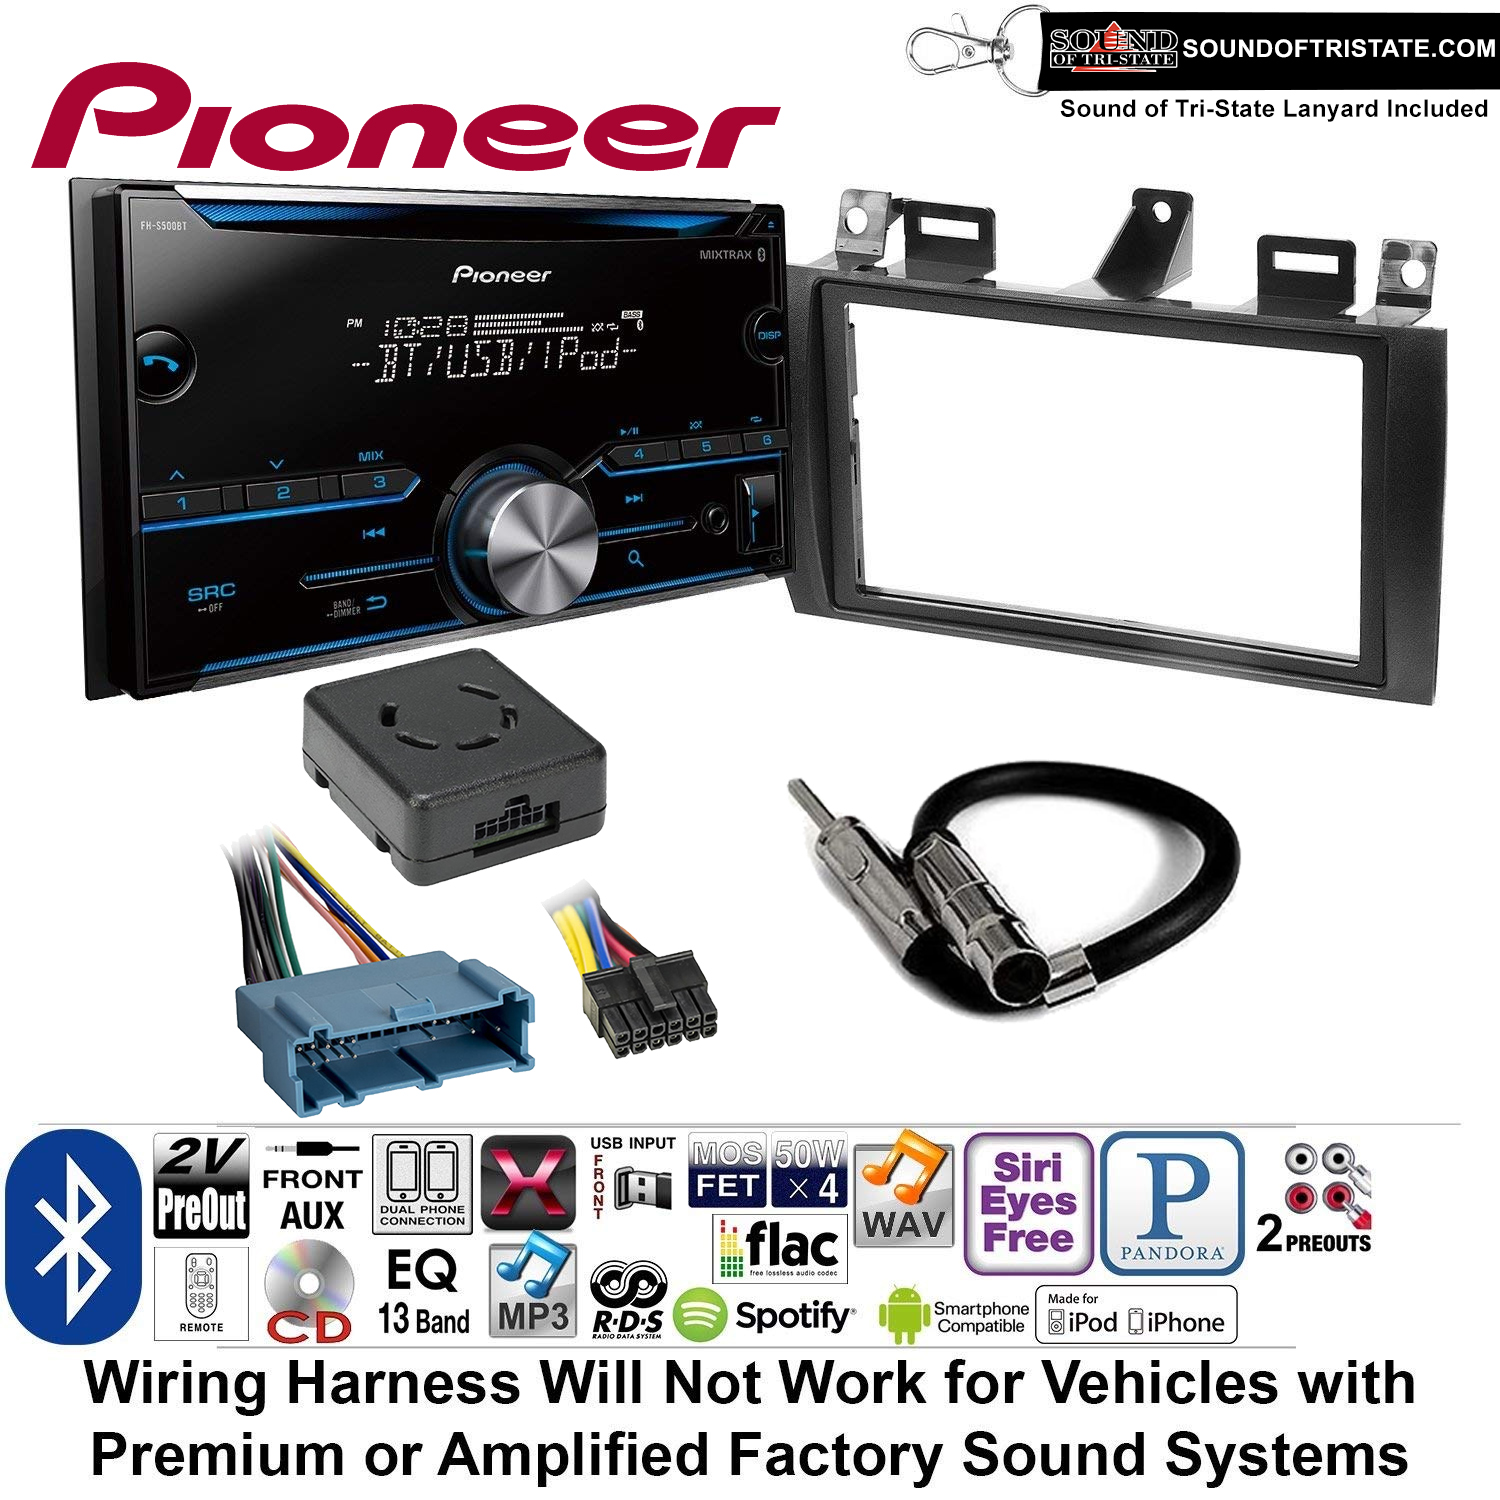 hight resolution of pioneer fh s500bt double din radio install kit with cd player bluetooth fits 2000 2005 cadillac deville 1996 2004 seville sound of tri state lanyard